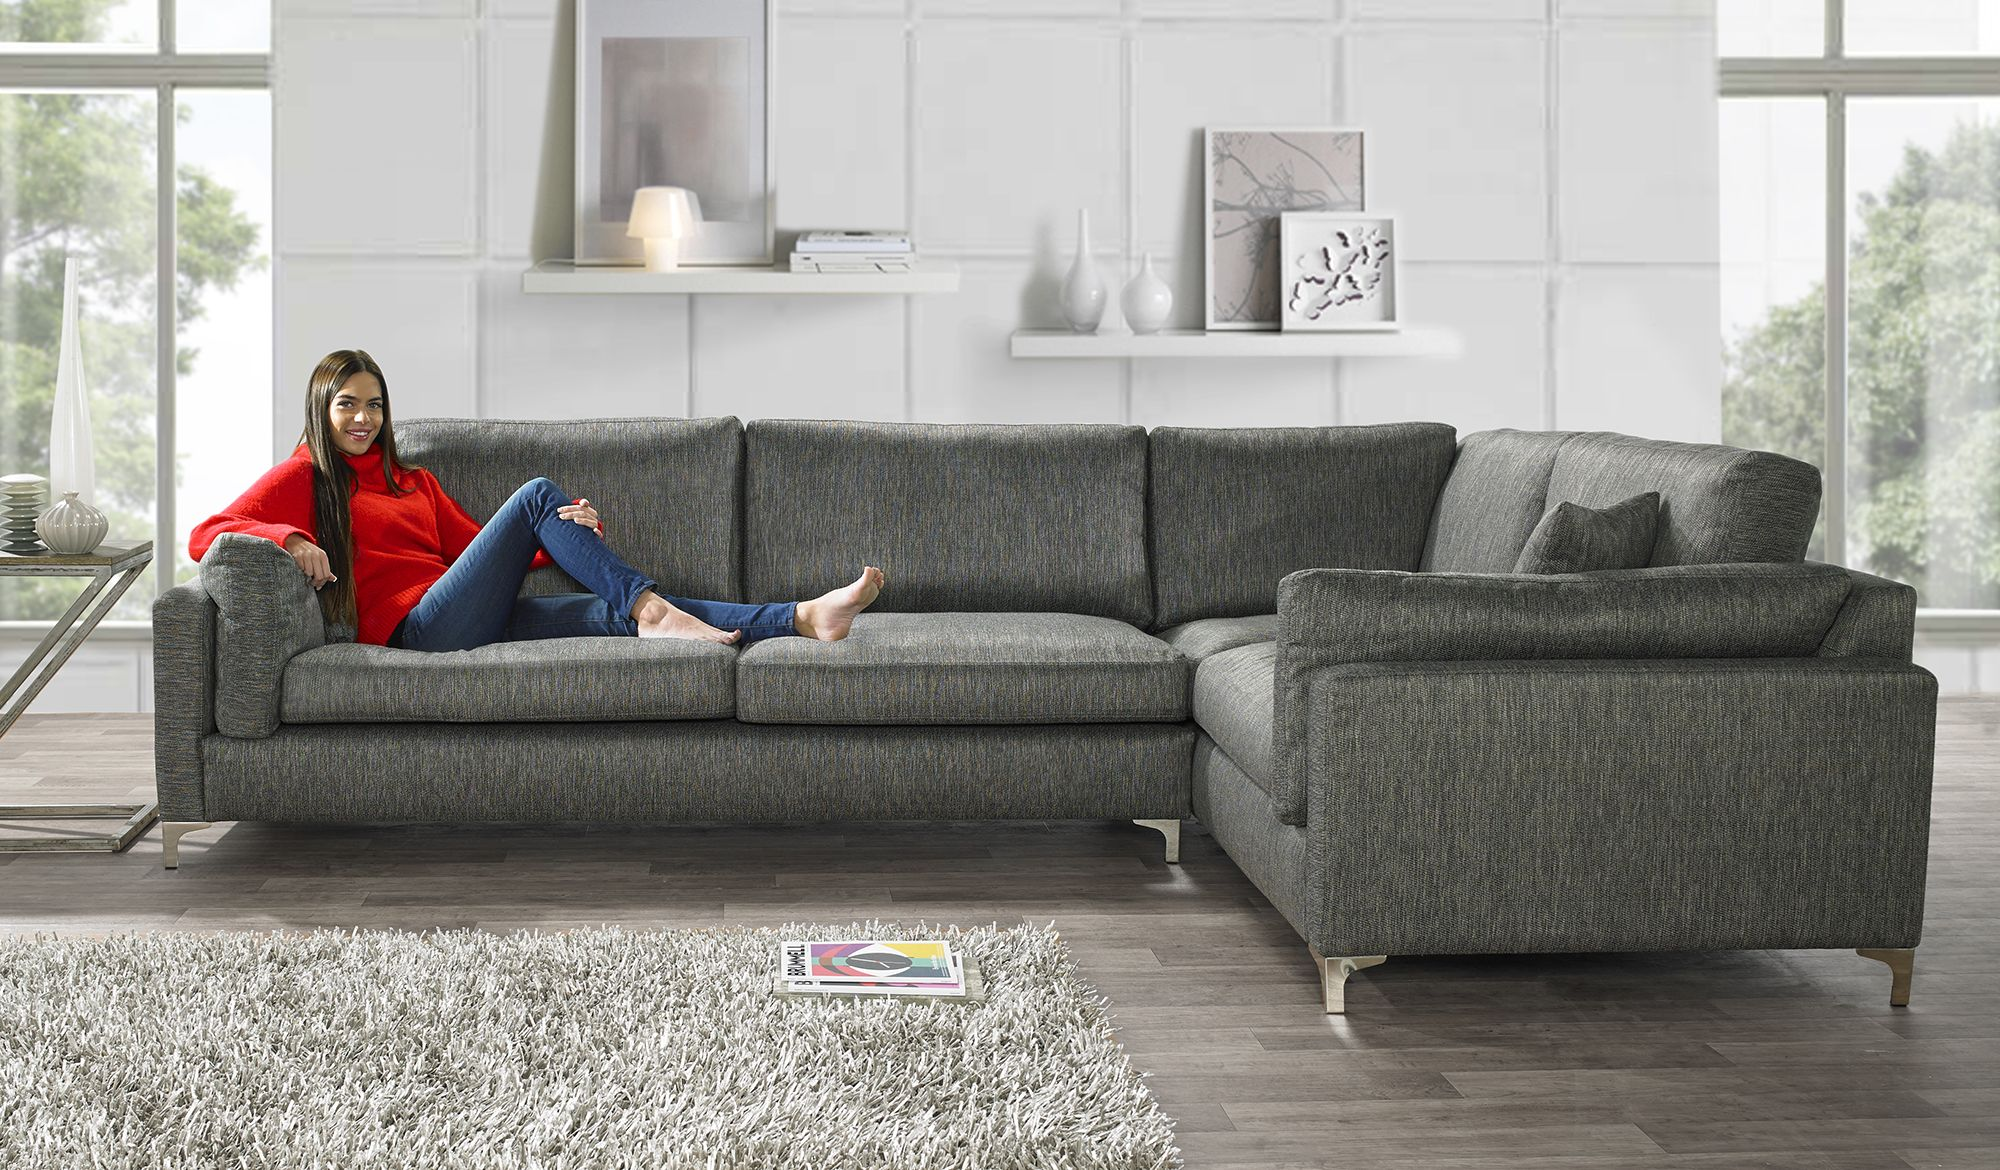 Sofa Works Beautiful Cricket Green Sofaworks Sofology 3 Seater Sofa In TheSofa